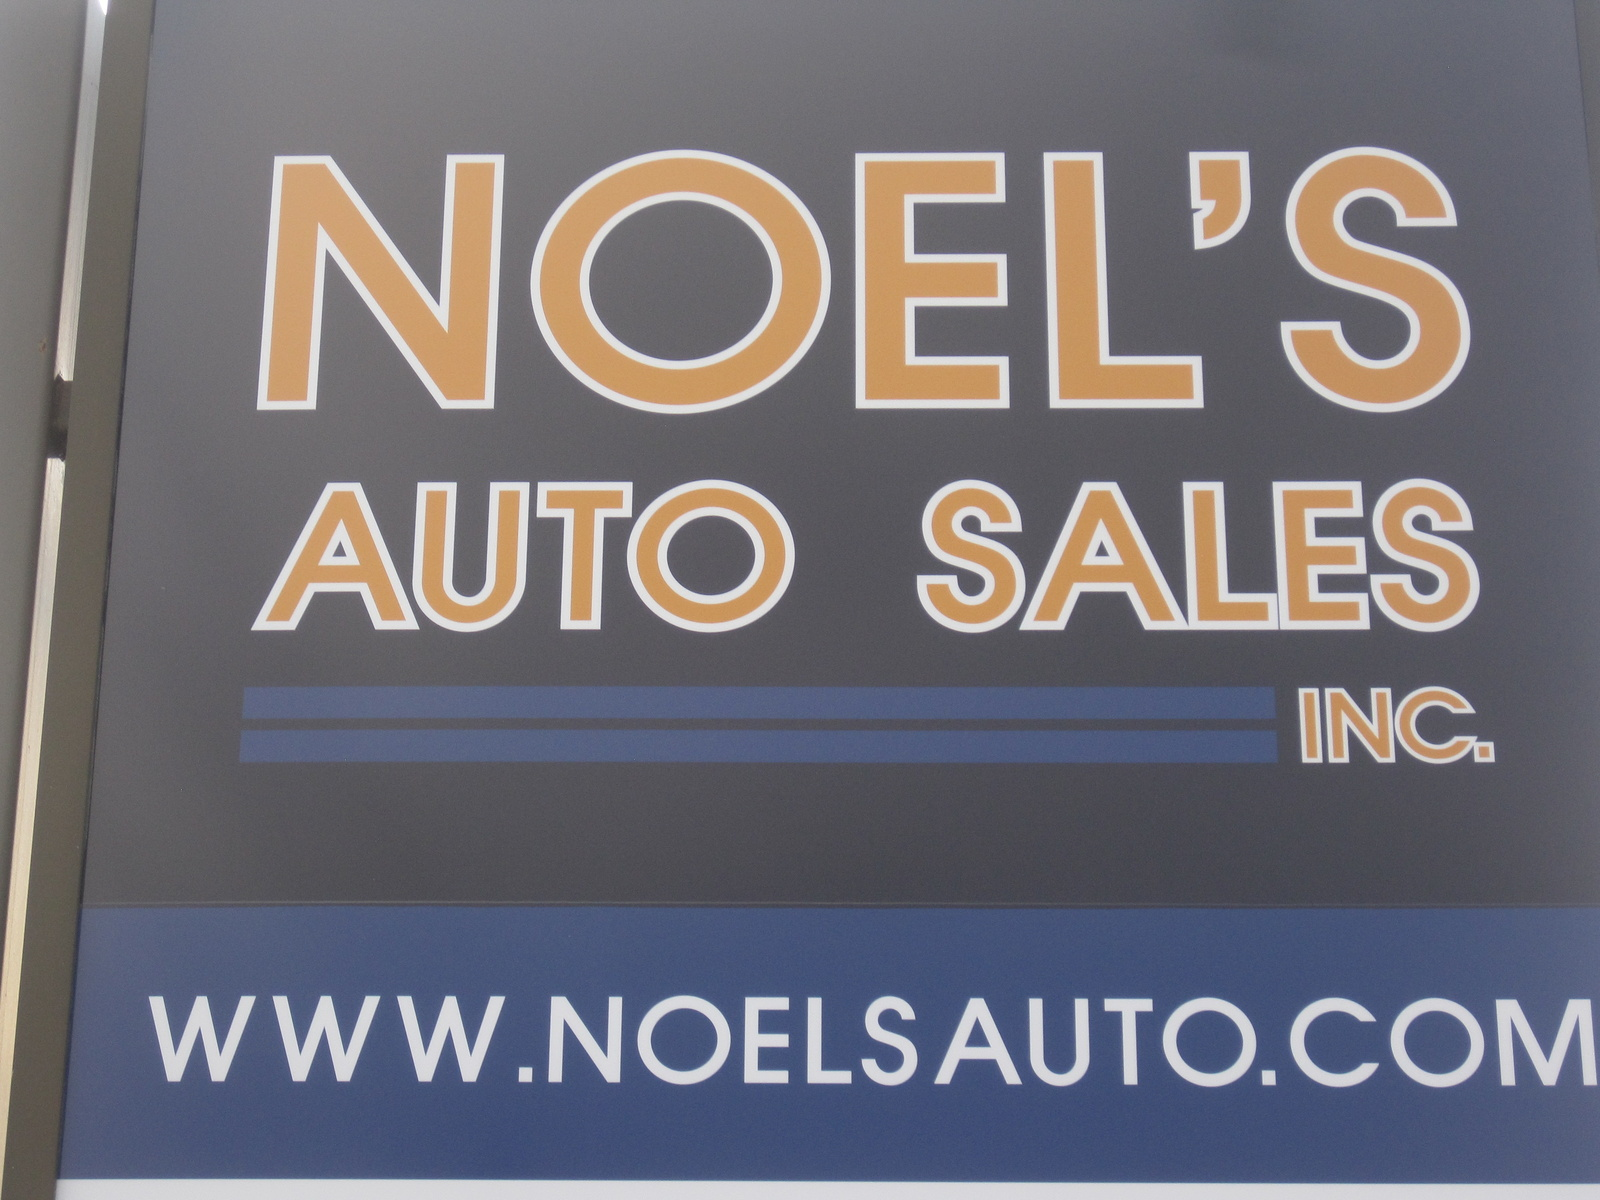 Gmc Dealers In Ma >> Noel's Auto Sales - North Grafton, MA: Read Consumer reviews, Browse Used and New Cars for Sale